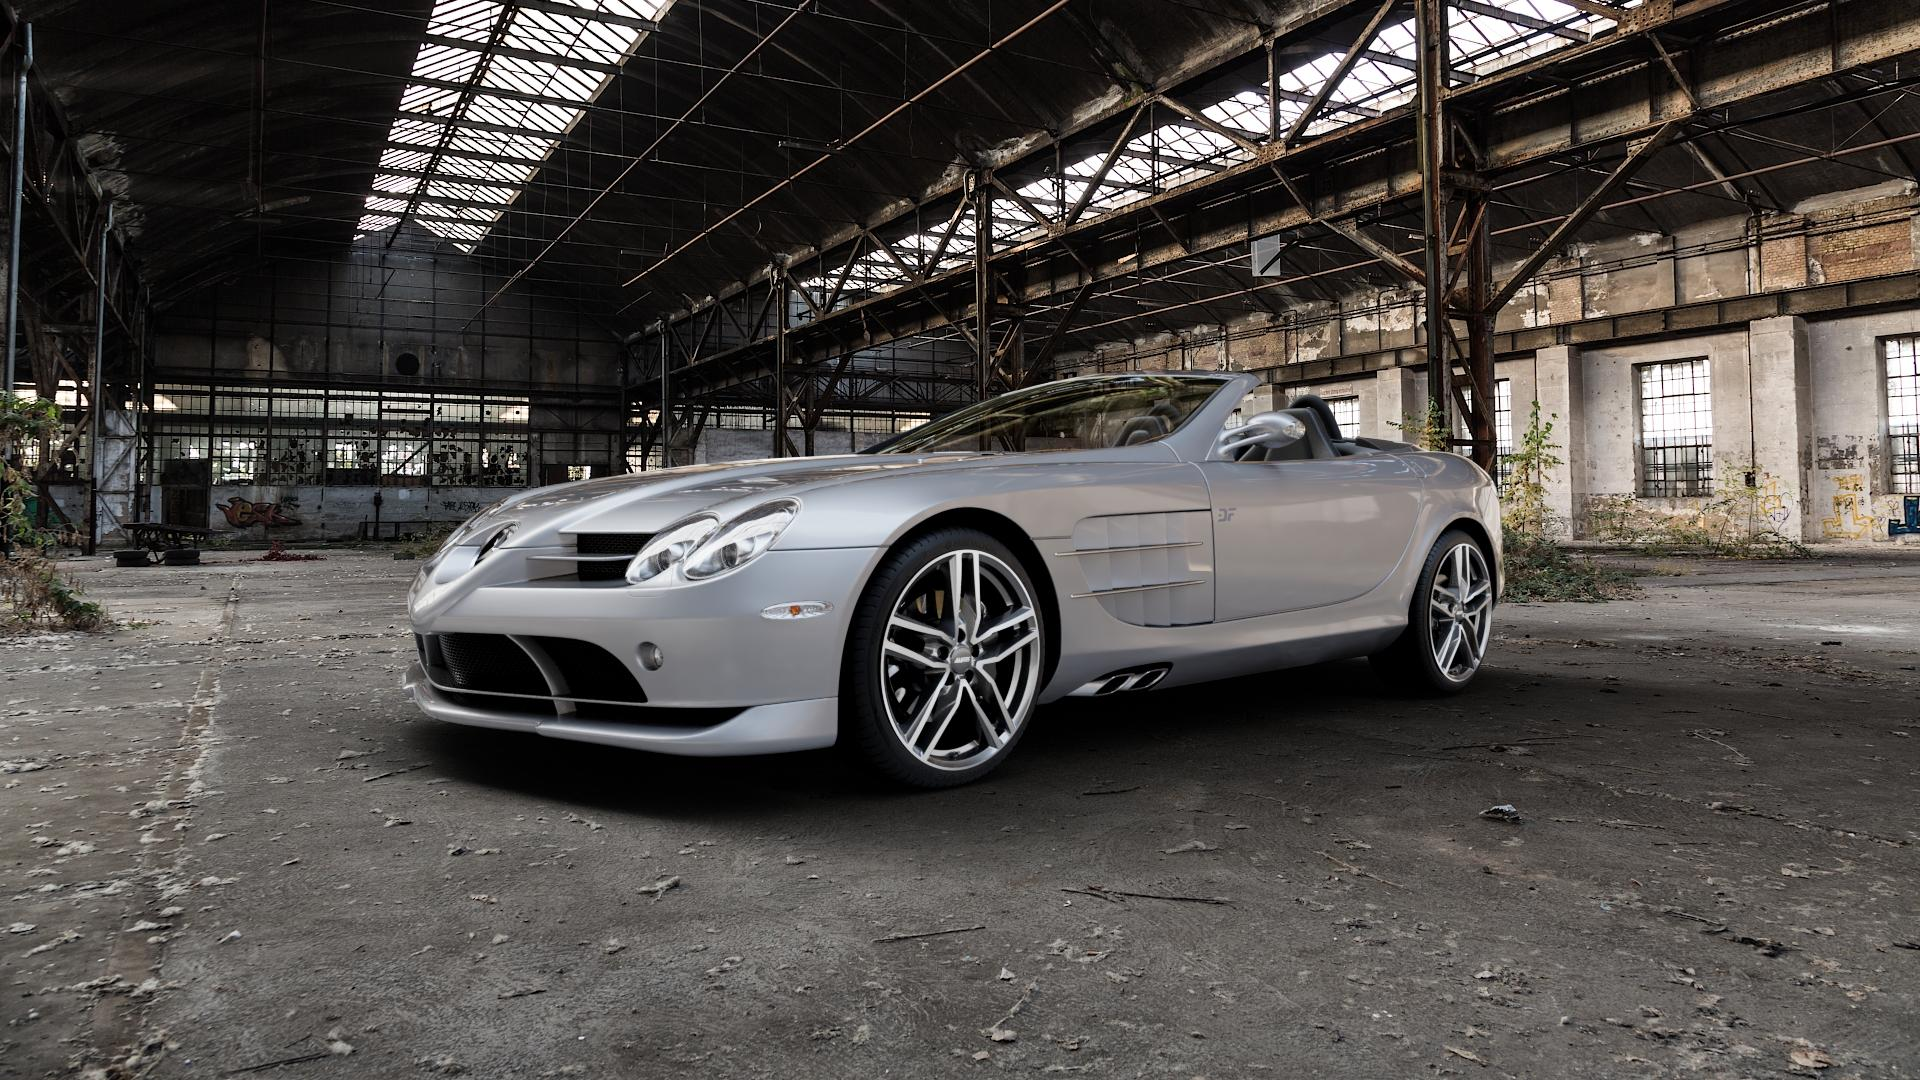 ALUTEC Ikenu graphit frontpoliert Felge mit Reifen grau mehrfarbig in 19Zoll Alufelge auf silbernem Mercedes SLR Typ R199 Roadster 5,4l 460kW (625 PS) 478kW 722 S (650 Stirling Moss Edition ⬇️ mit 15mm Tieferlegung ⬇️ Industriehalle 1 Camera_000